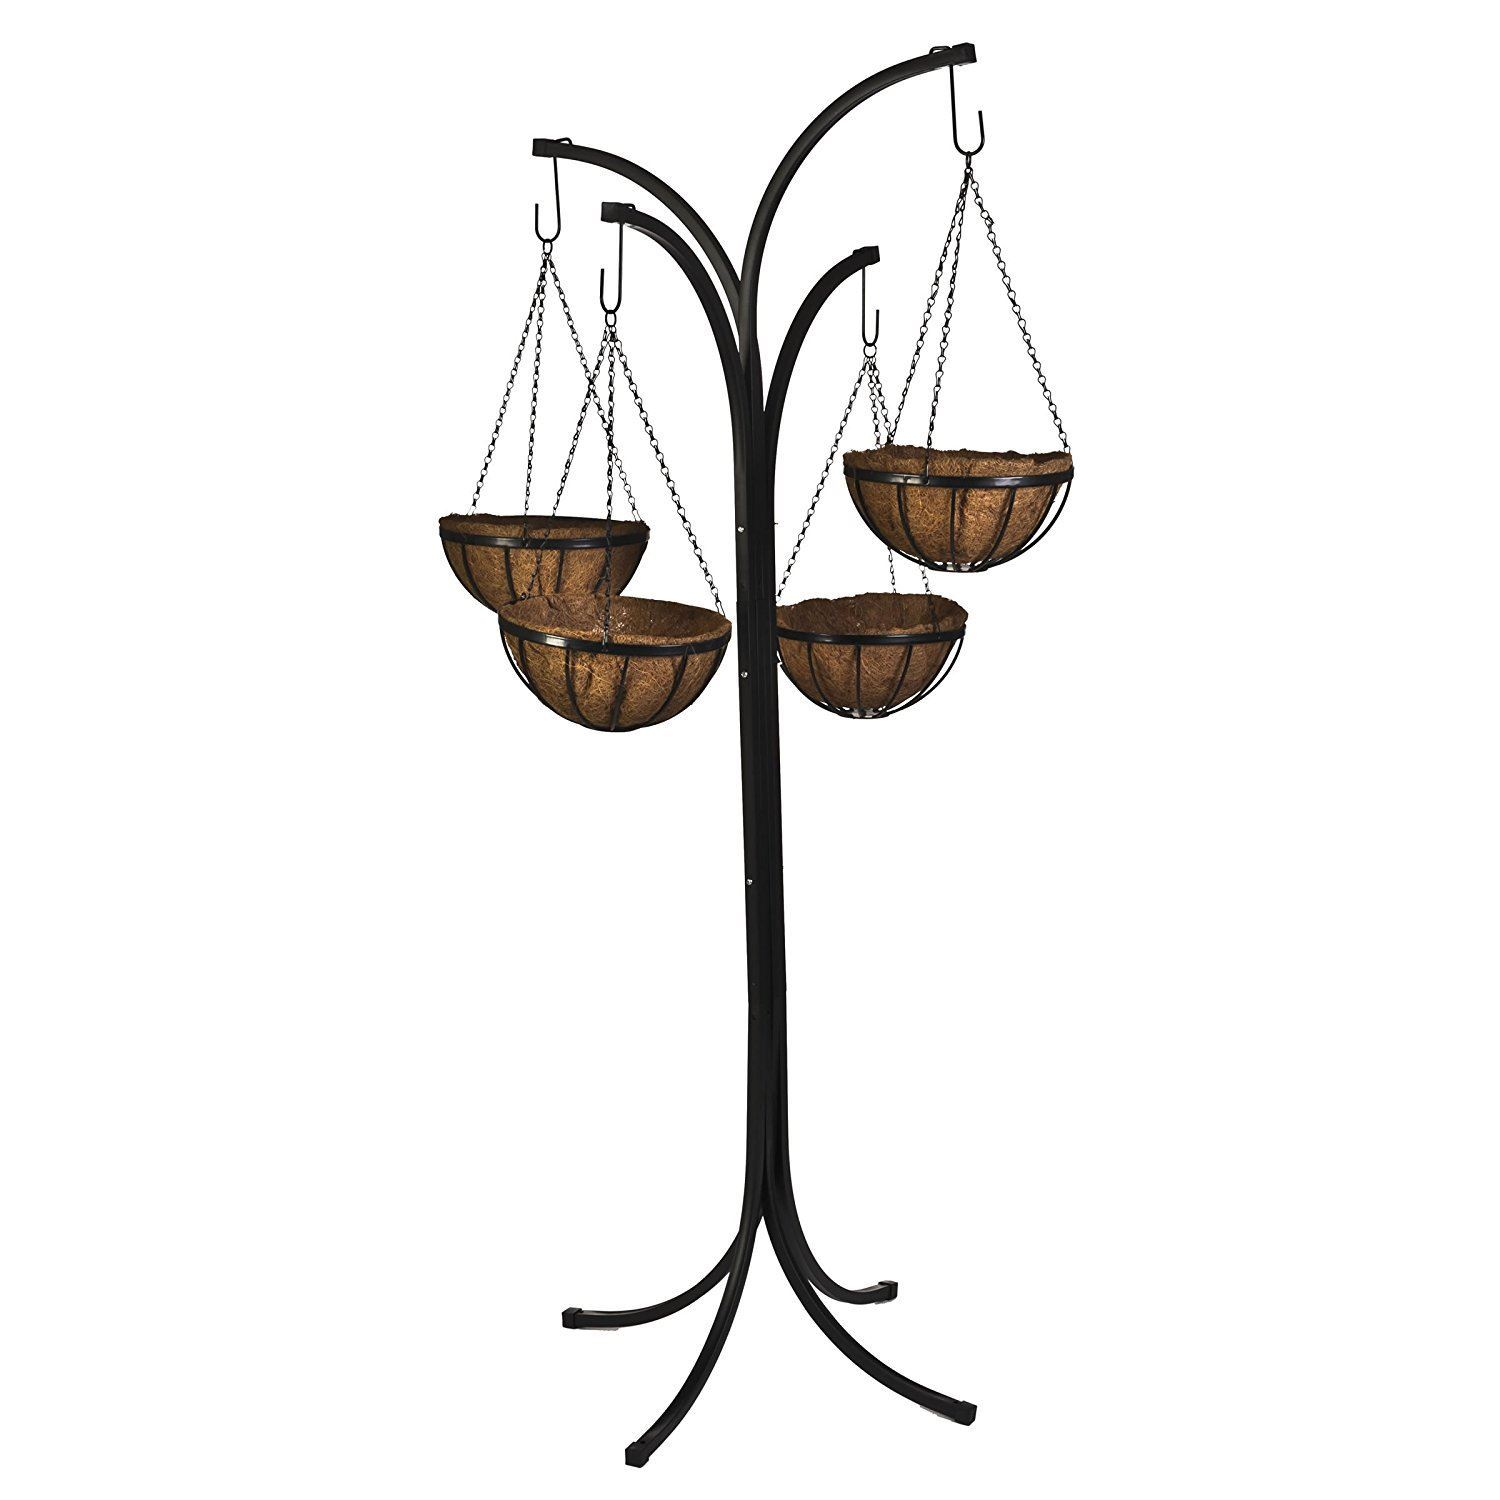 4 Arm Tree Cascade Hanging Basket Patio Stand Garden Plant ... on Plant Stand Hanging  id=95805